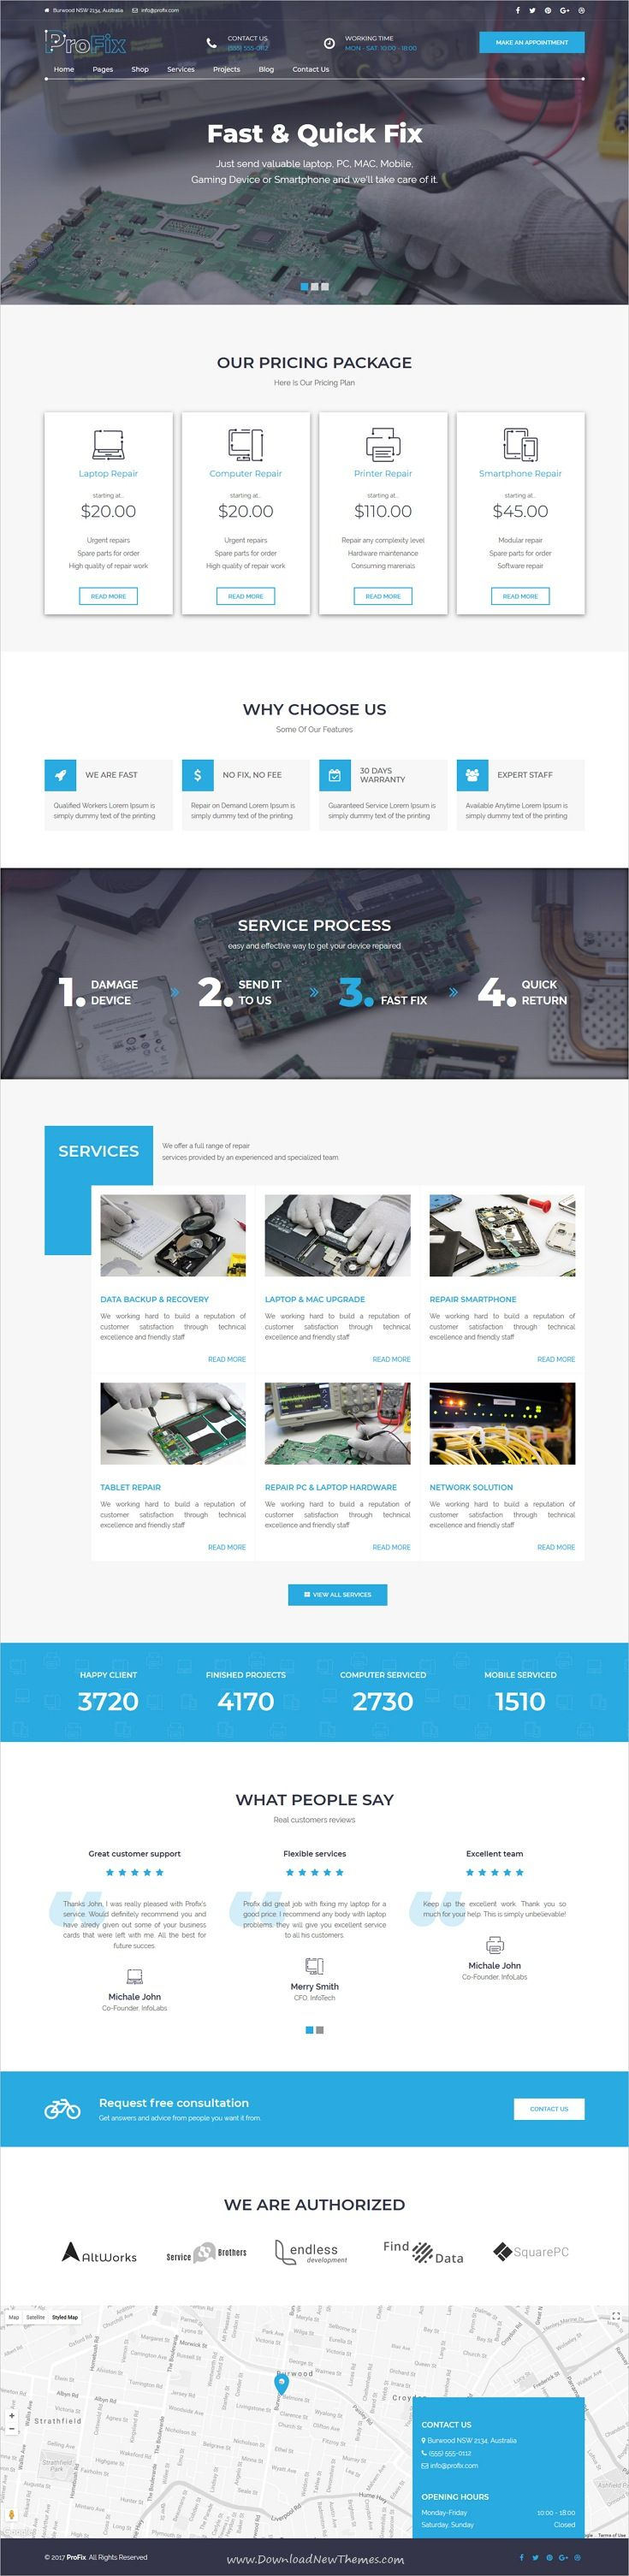 11 Best Wythenshawe Xchange Images On Pinterest 15 Anos Years Printed Circuit Board Prototype Product Photosprinted Profix Computer Mobile Phone Repair Service Company Shop Html5 Template